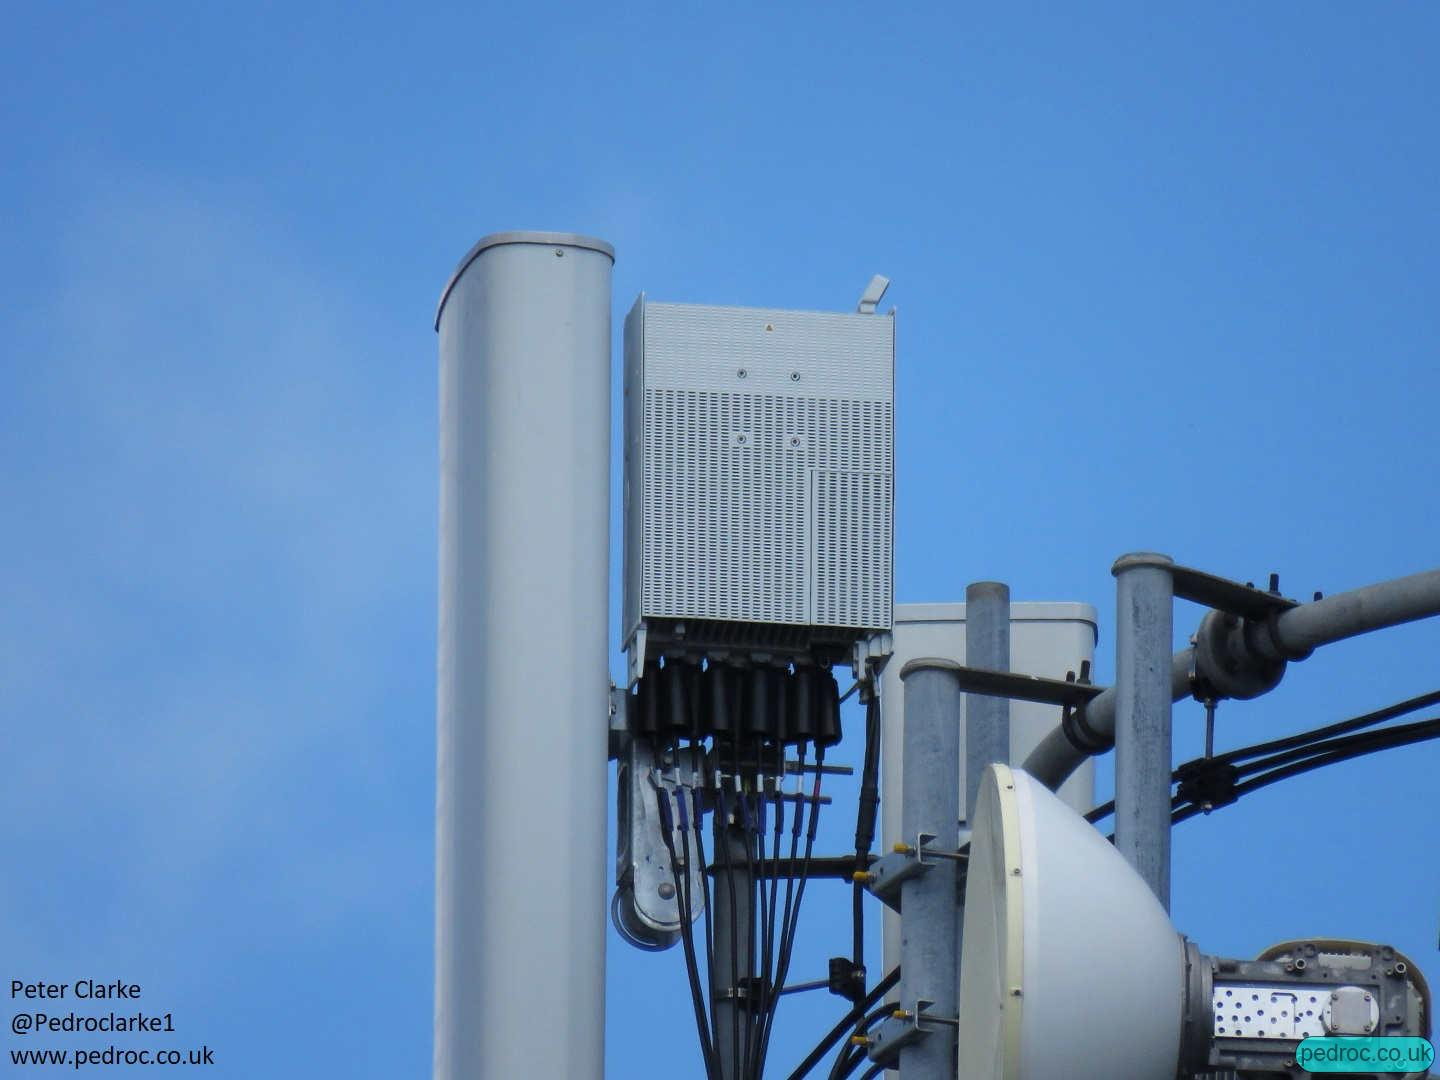 Huawei RRU 5258 for 8T8R N78 behind Huawei AOC4518r8v06 antenna on this EE 5GEE mast.